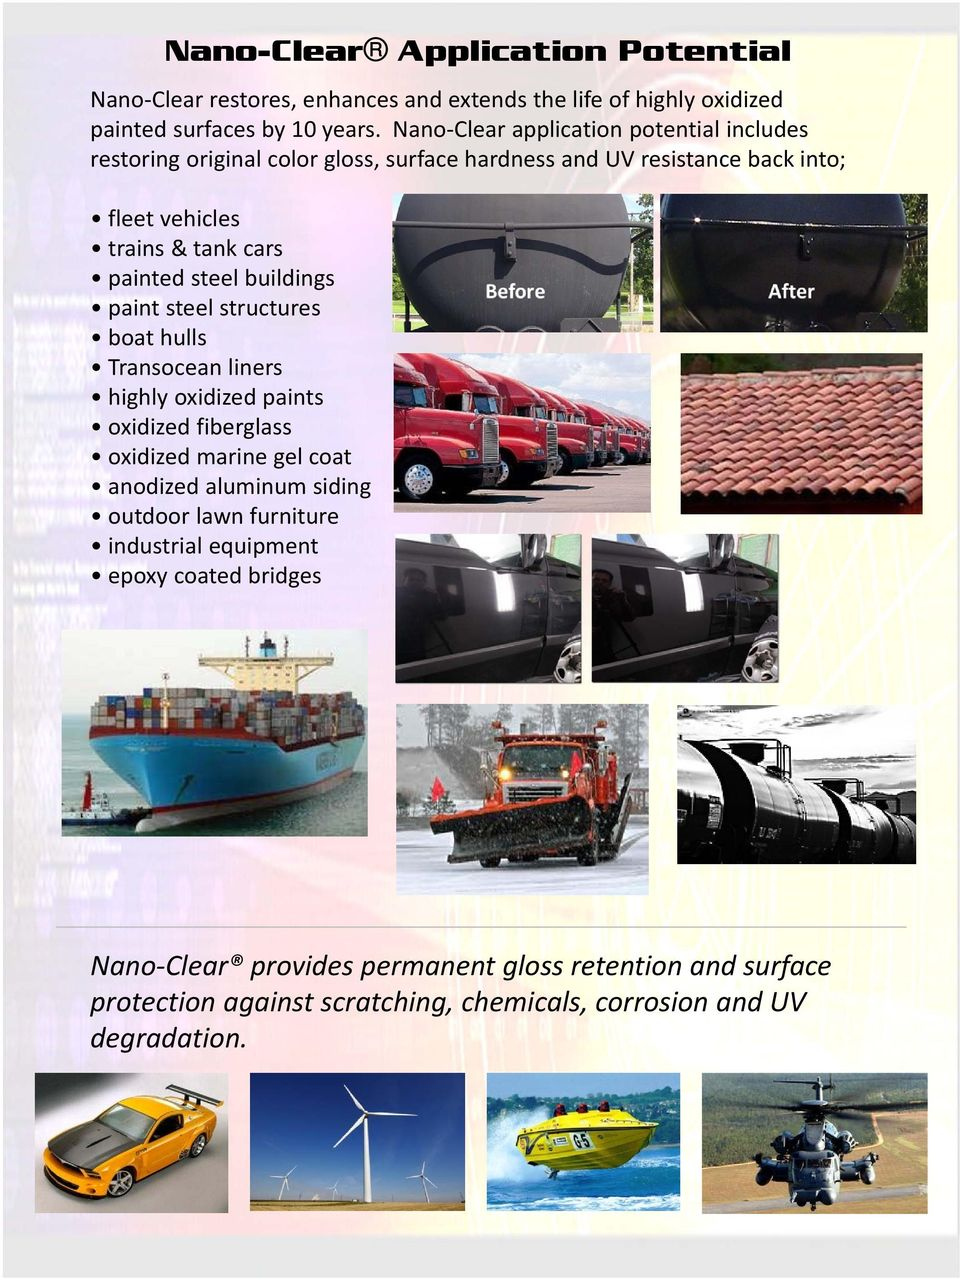 steel buildings paint steel structures boat hulls Transocean liners highly oxidized paints oxidized fiberglass oxidized marine gel coat anodized aluminum siding